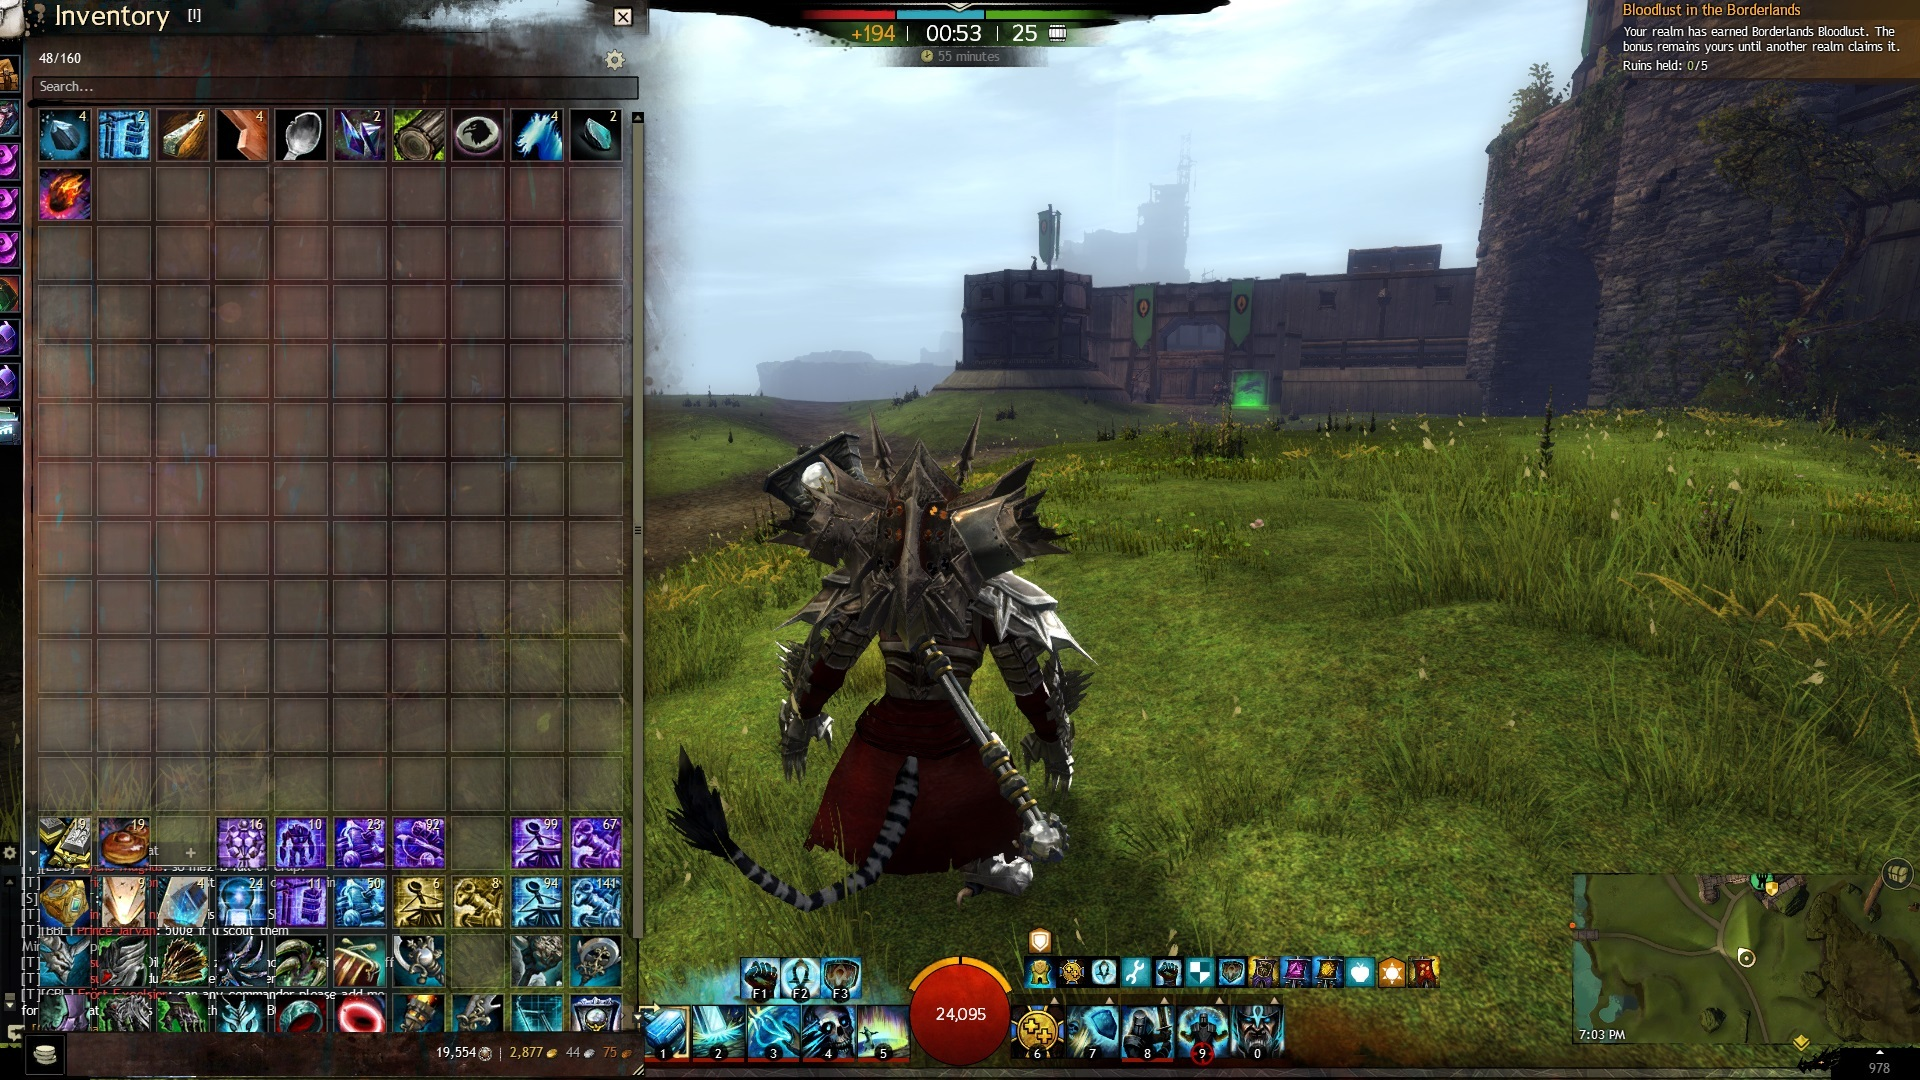 Guild wars 2 forum guild wars 2 discussion wvw give wallet for siege weapon blueprints in guild wars 2 discussion malvernweather Choice Image